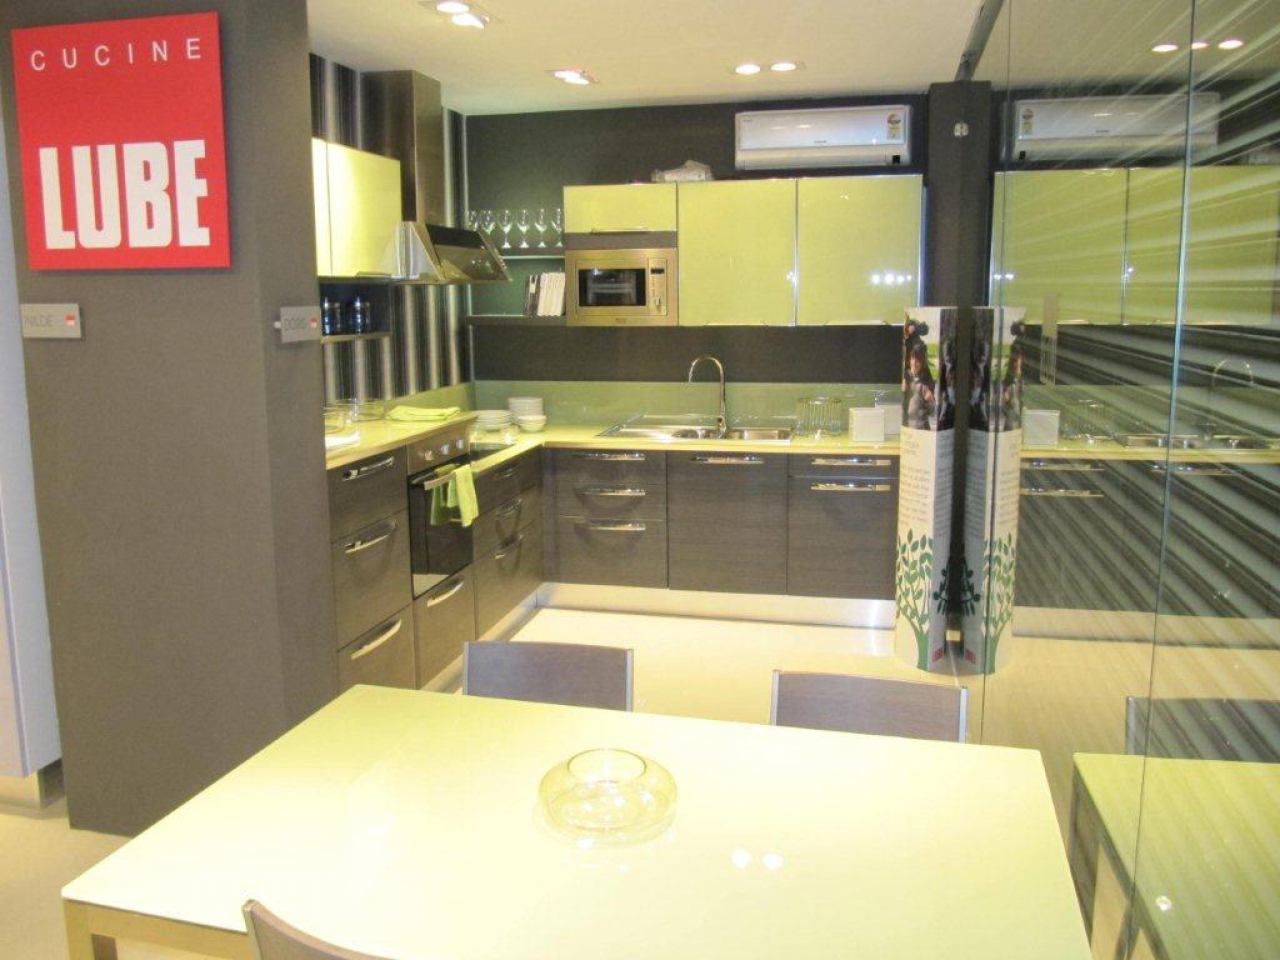 A new single-brand store in India for Cucine Lube - Cucine LUBE